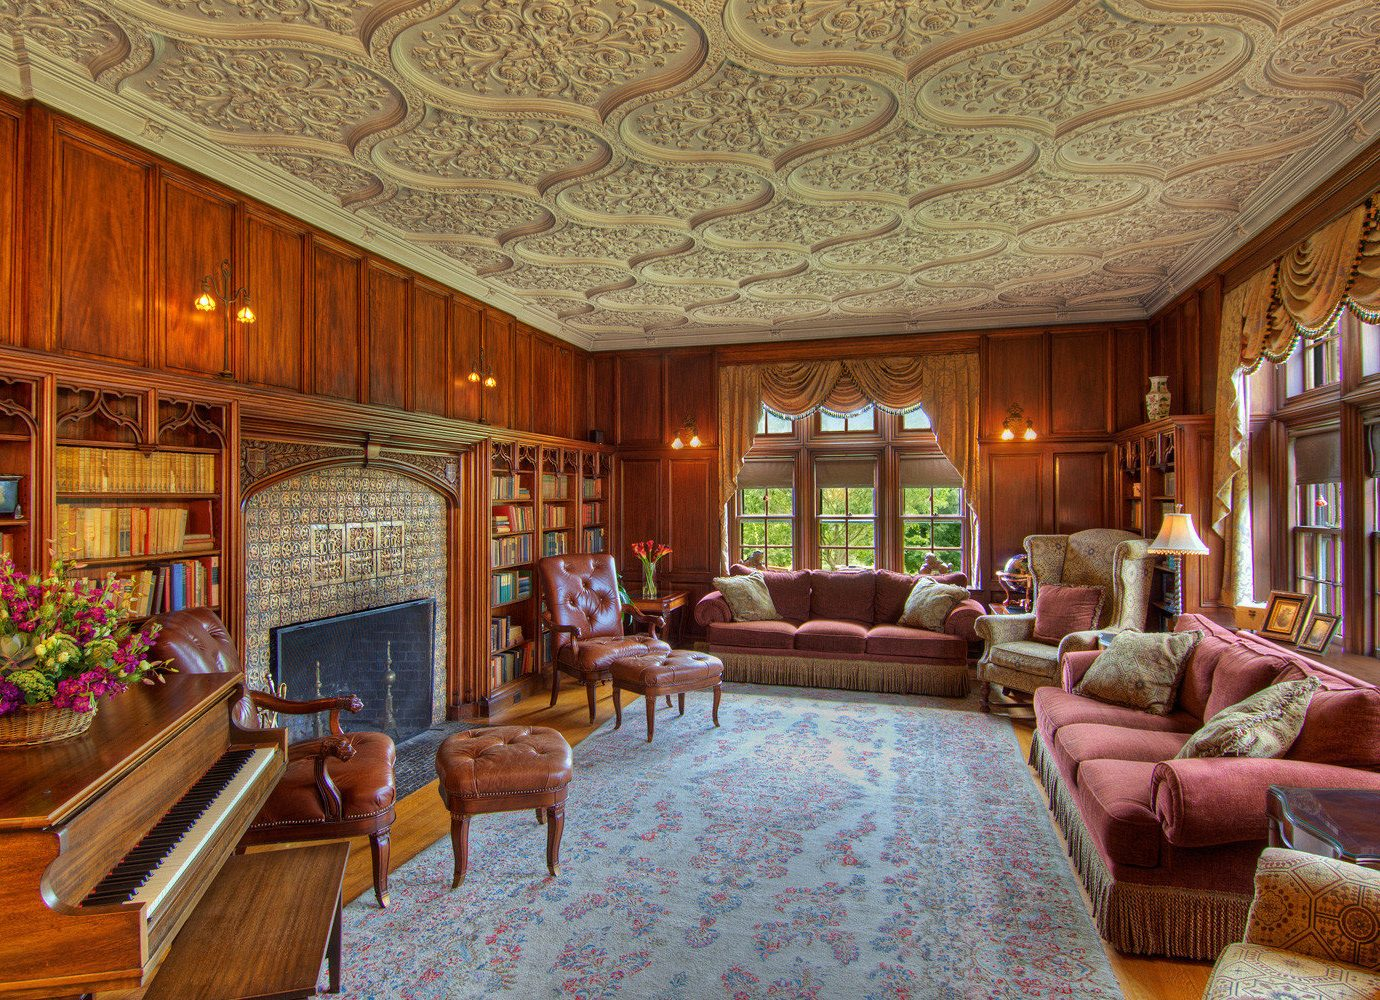 Lounge Luxury Rustic property Lobby living room mansion home recreation room palace Resort